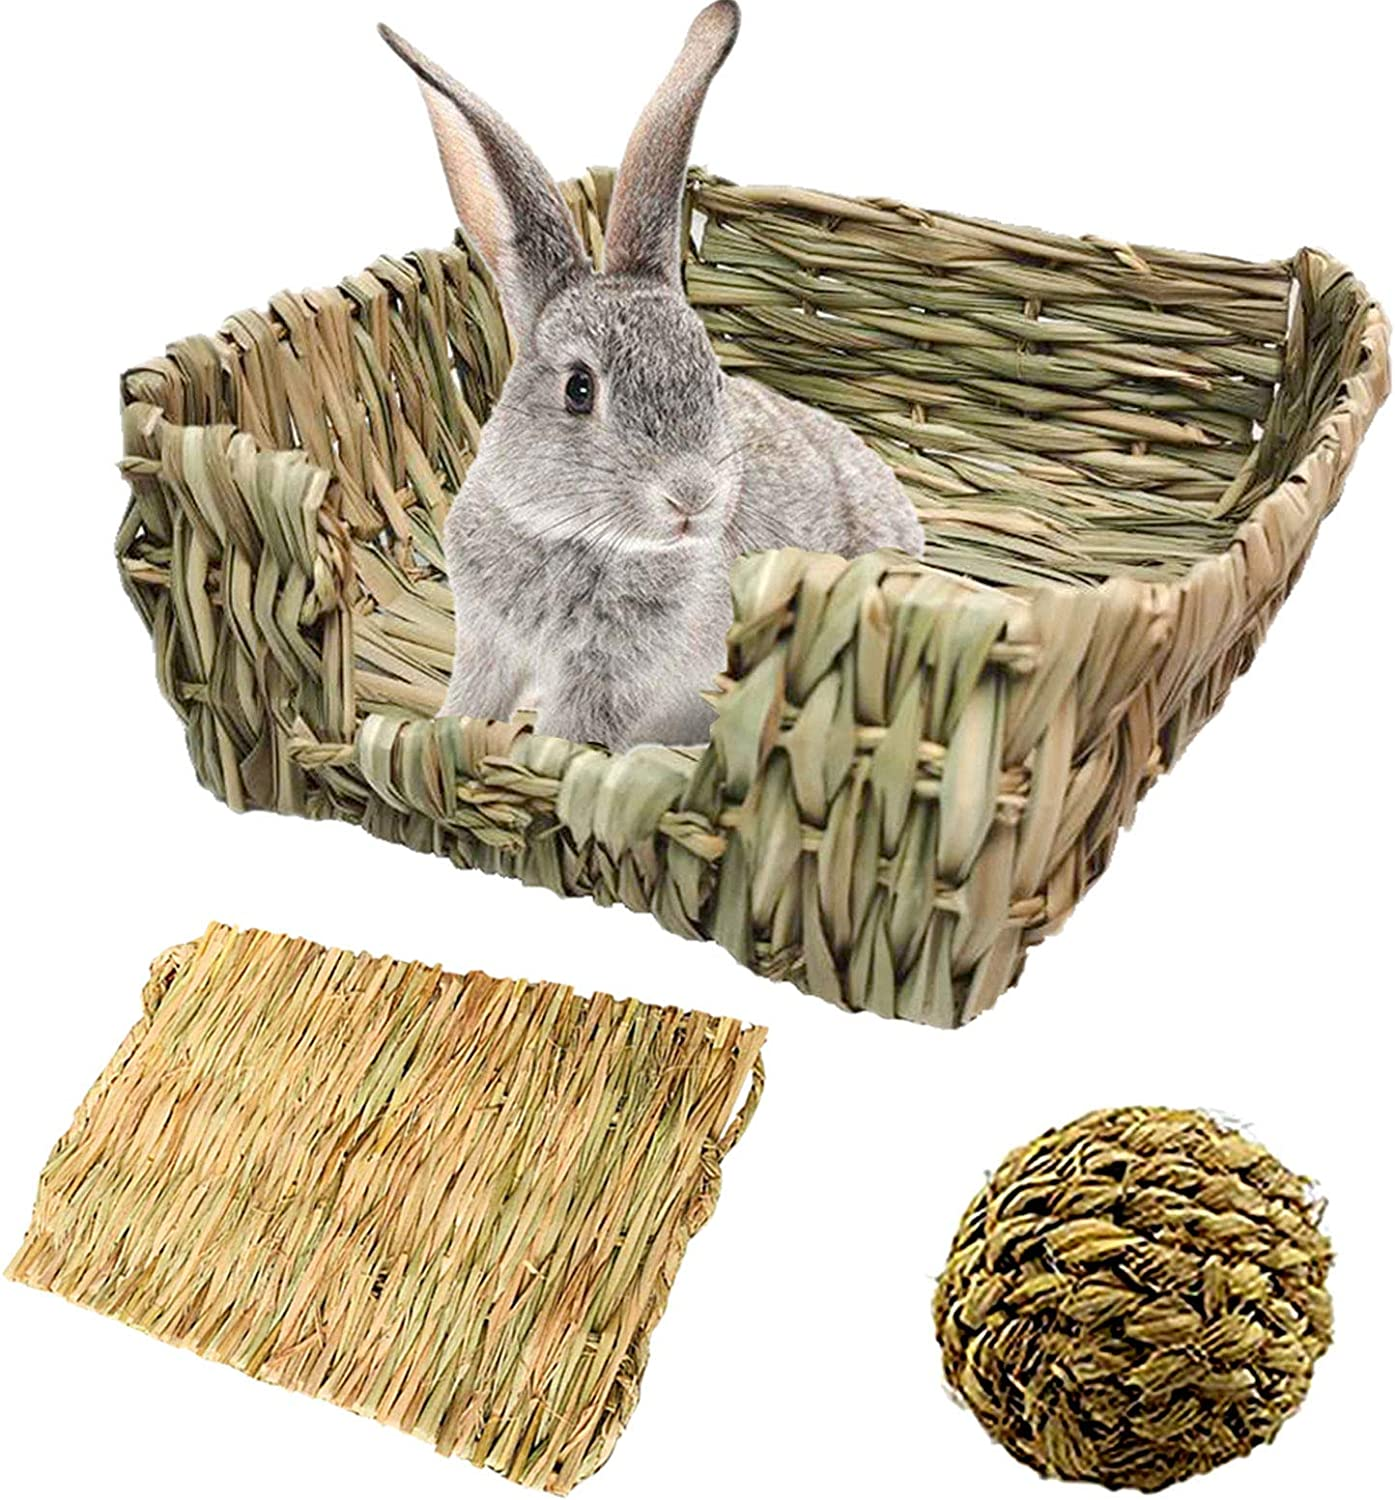 PINVNBY PortableBunny Overseas parallel import regular item Grass Bed Hand-Made Small Rabbit Dealing full price reduction with Nat